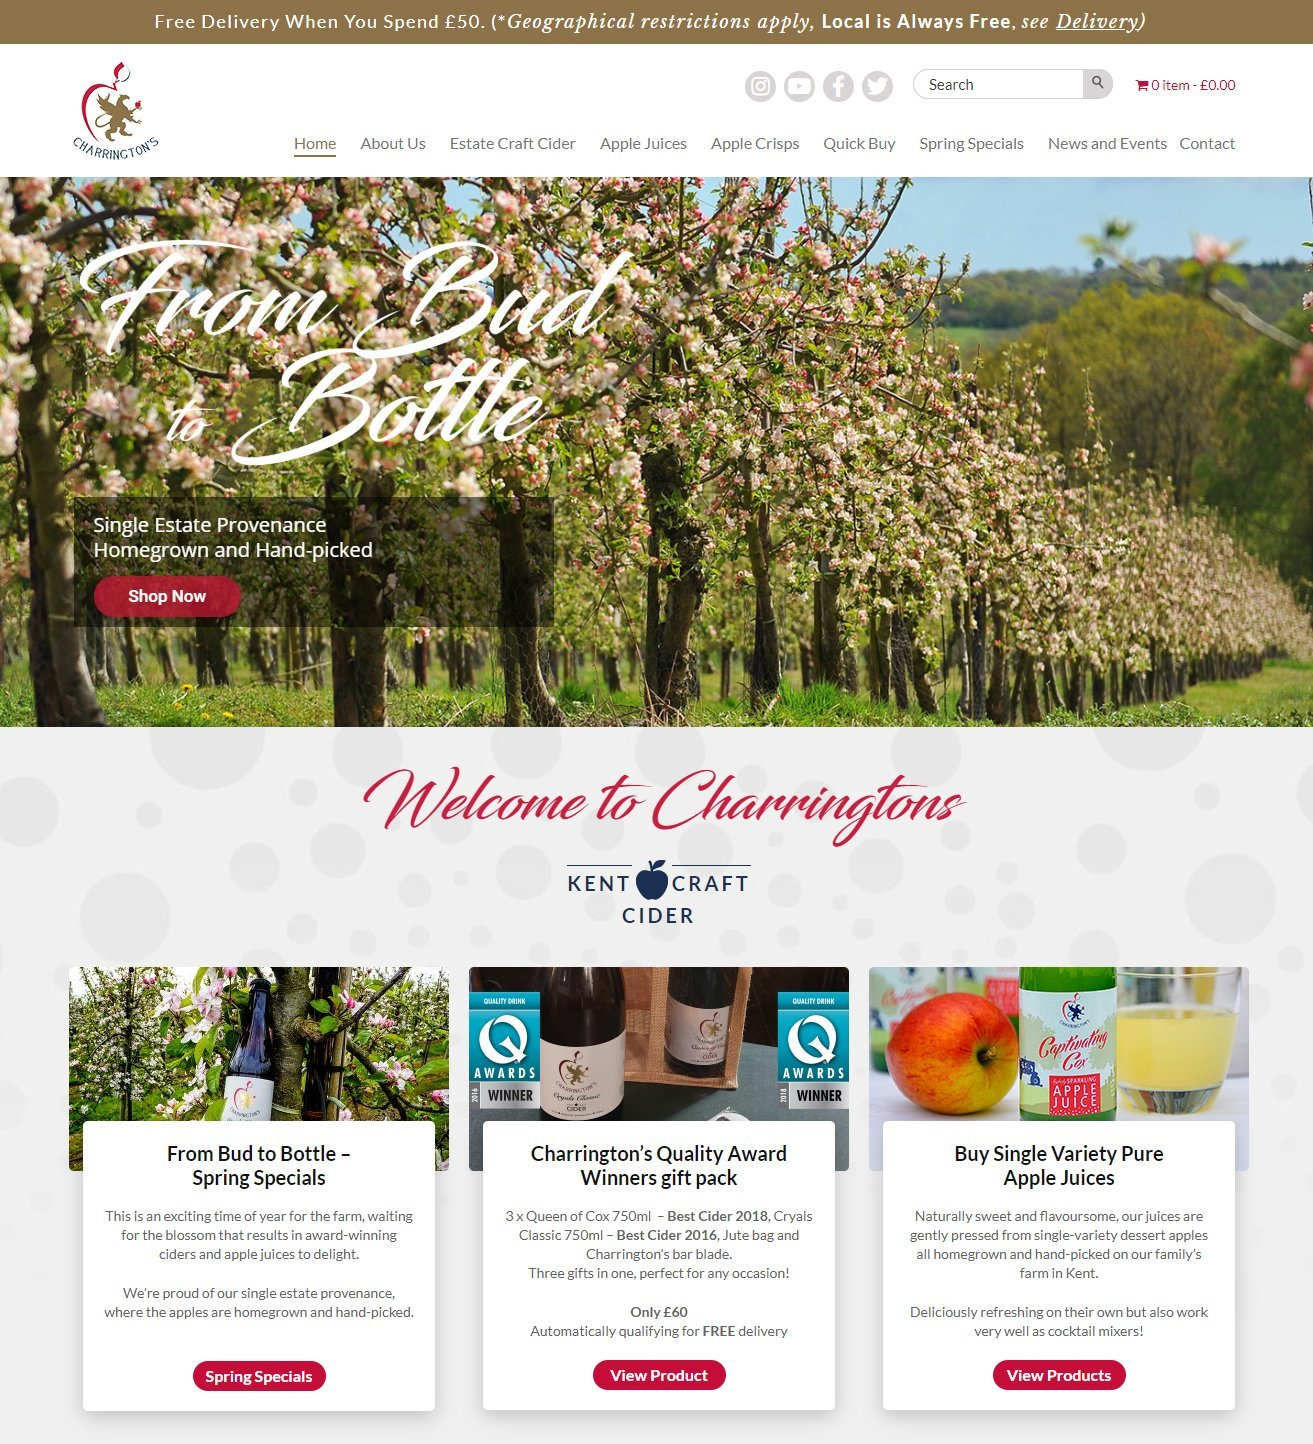 charringtonsdrinks.com, e-commerce websites